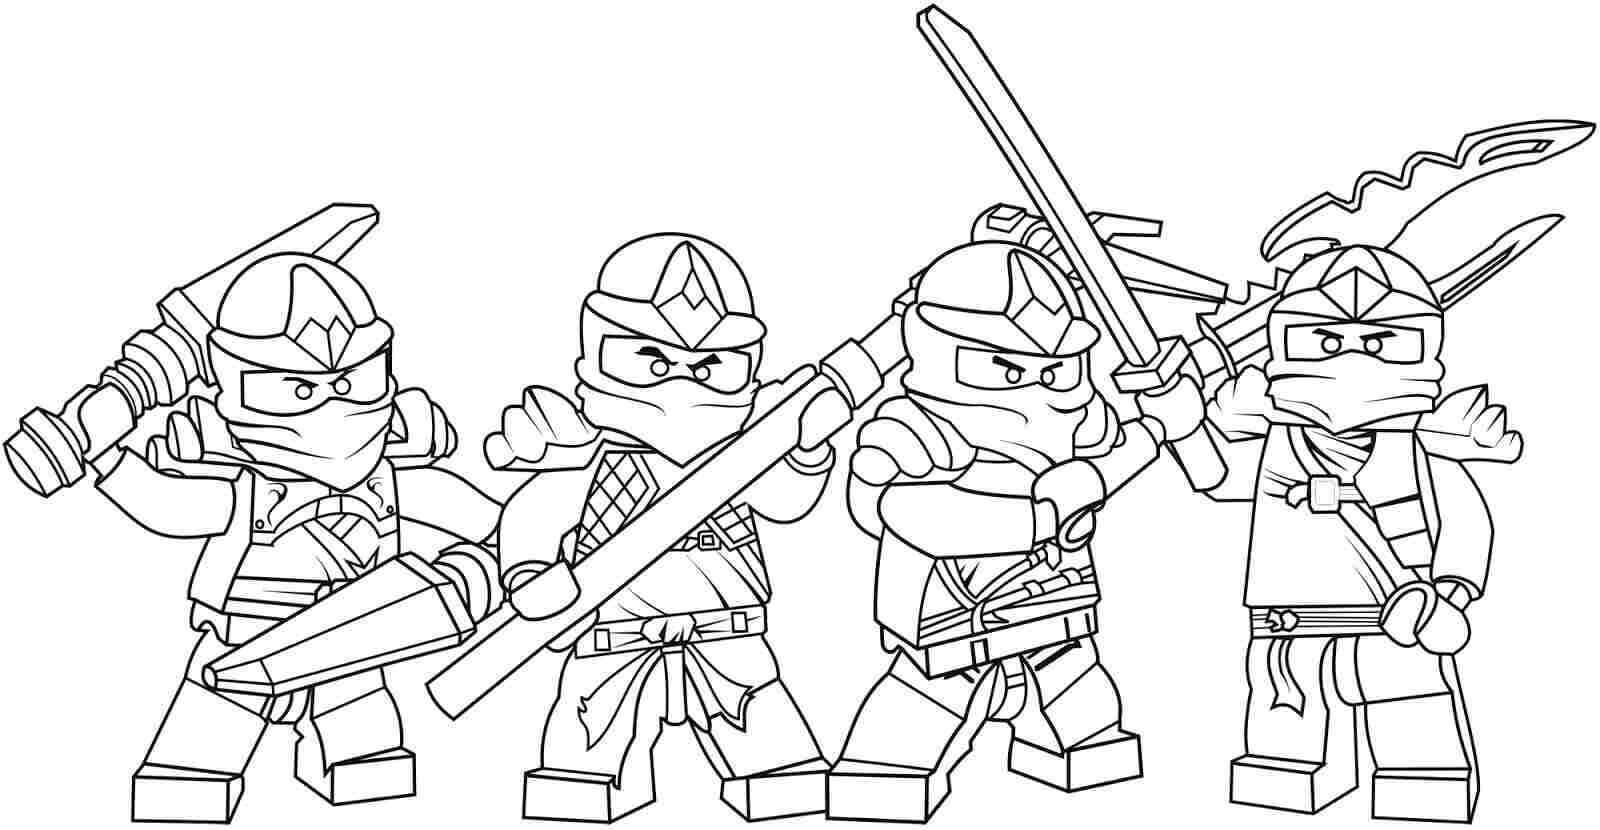 nindroid coloring pages kleurplaat lego ninjago nindroid ninjago green ninja nindroid coloring pages